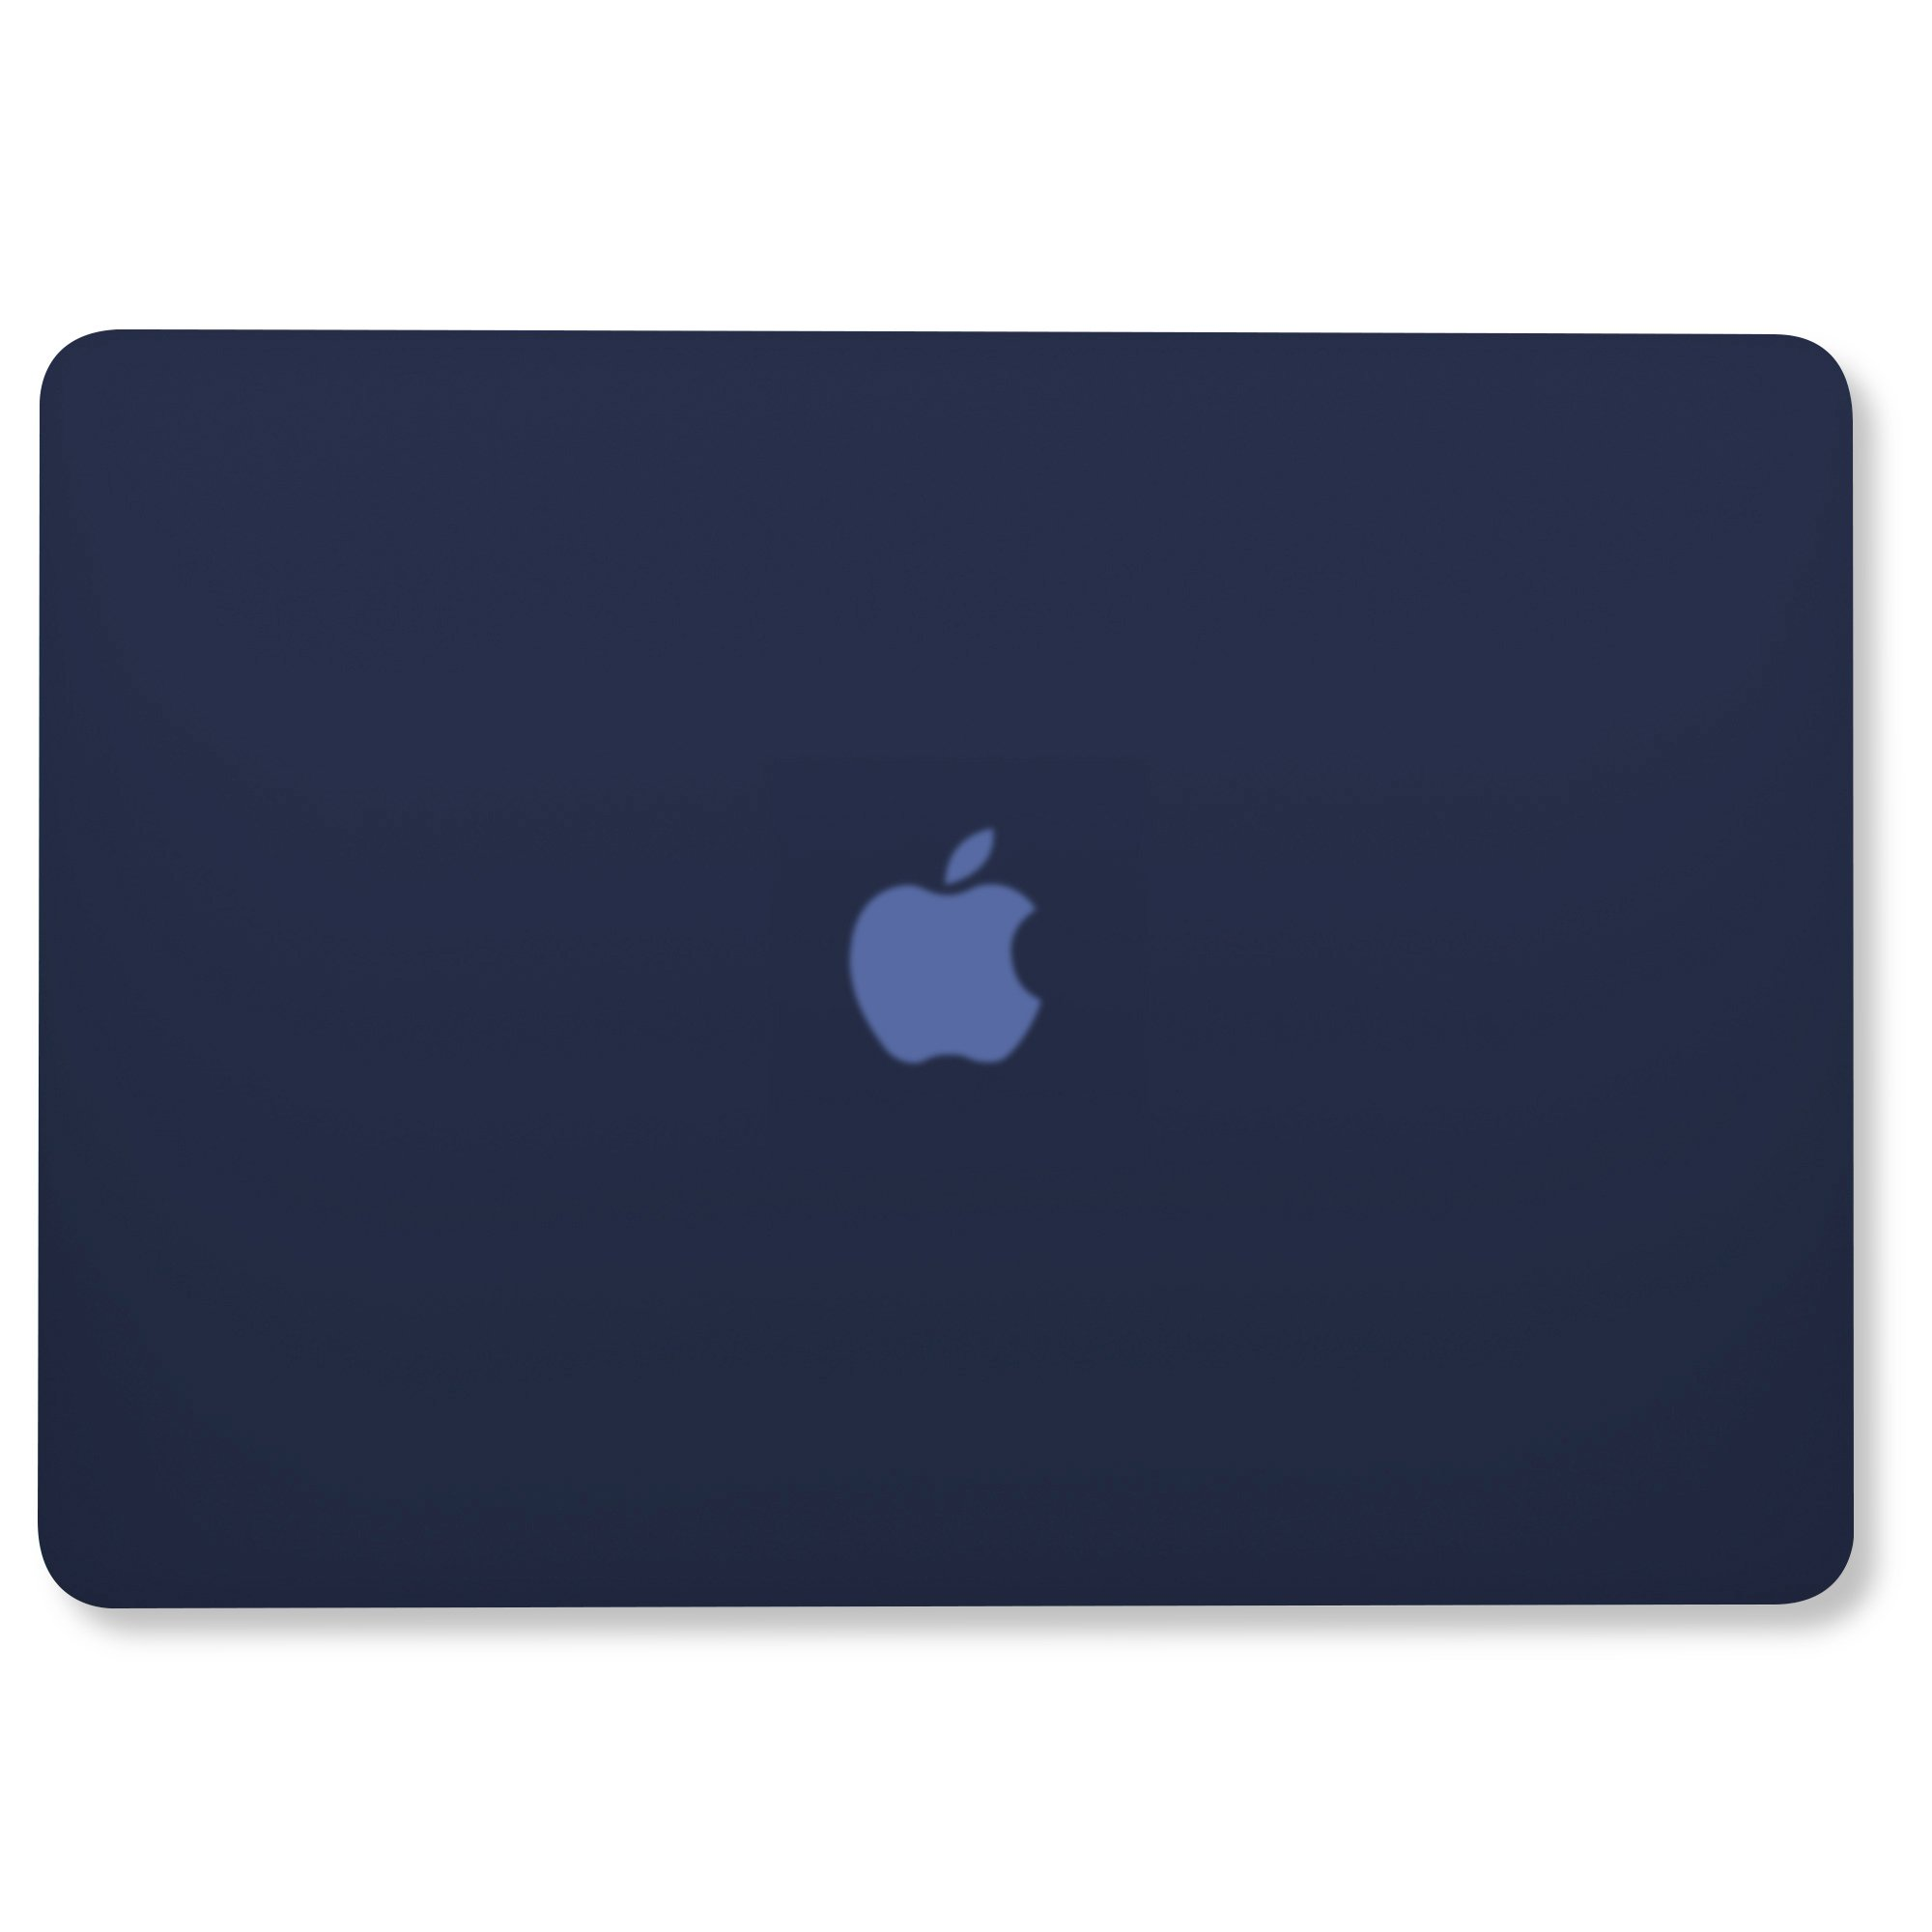 GMYLE 2 in 1 Bundle Soft-Touch Frosted Hard Case for Macbook Air 13 inch (Model: A1369/A1466) and 13-13.3 inch Water Repellent Laptop Sleeve with Handle and Pocket - Navy Blue by GMYLE (Image #7)